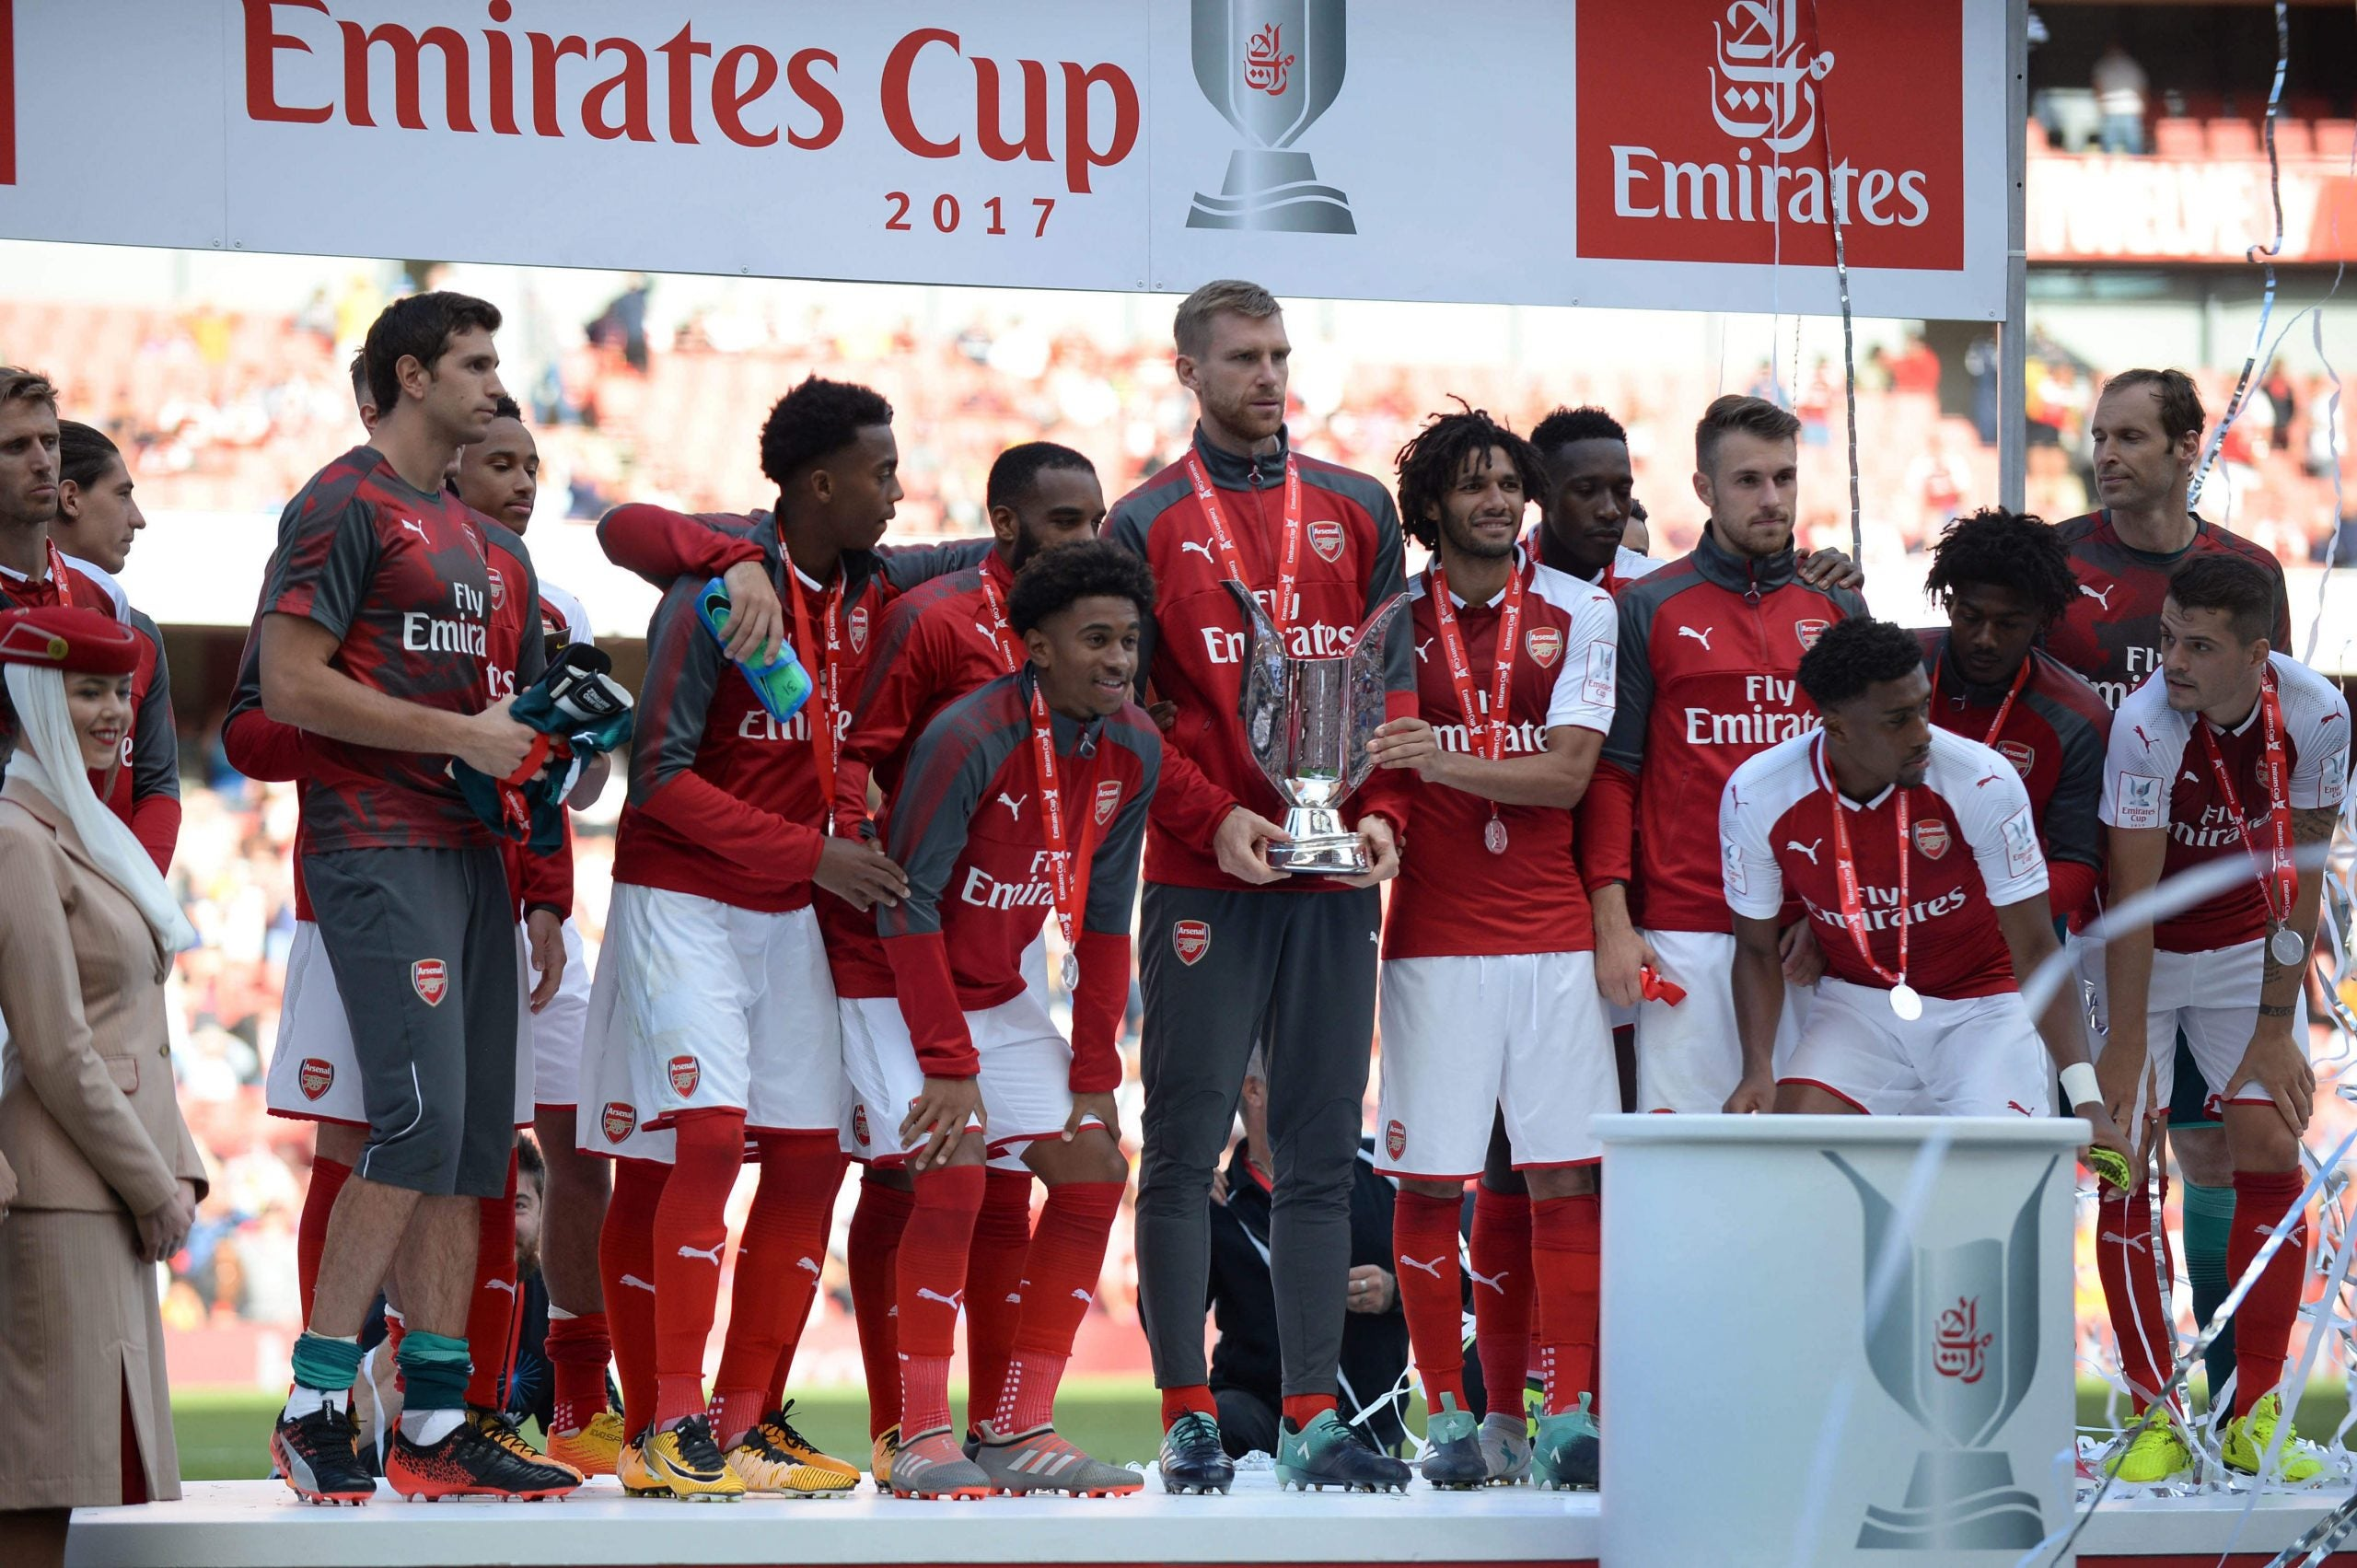 Arsenal's Emirates Cup win shows how hollow pre-season really is